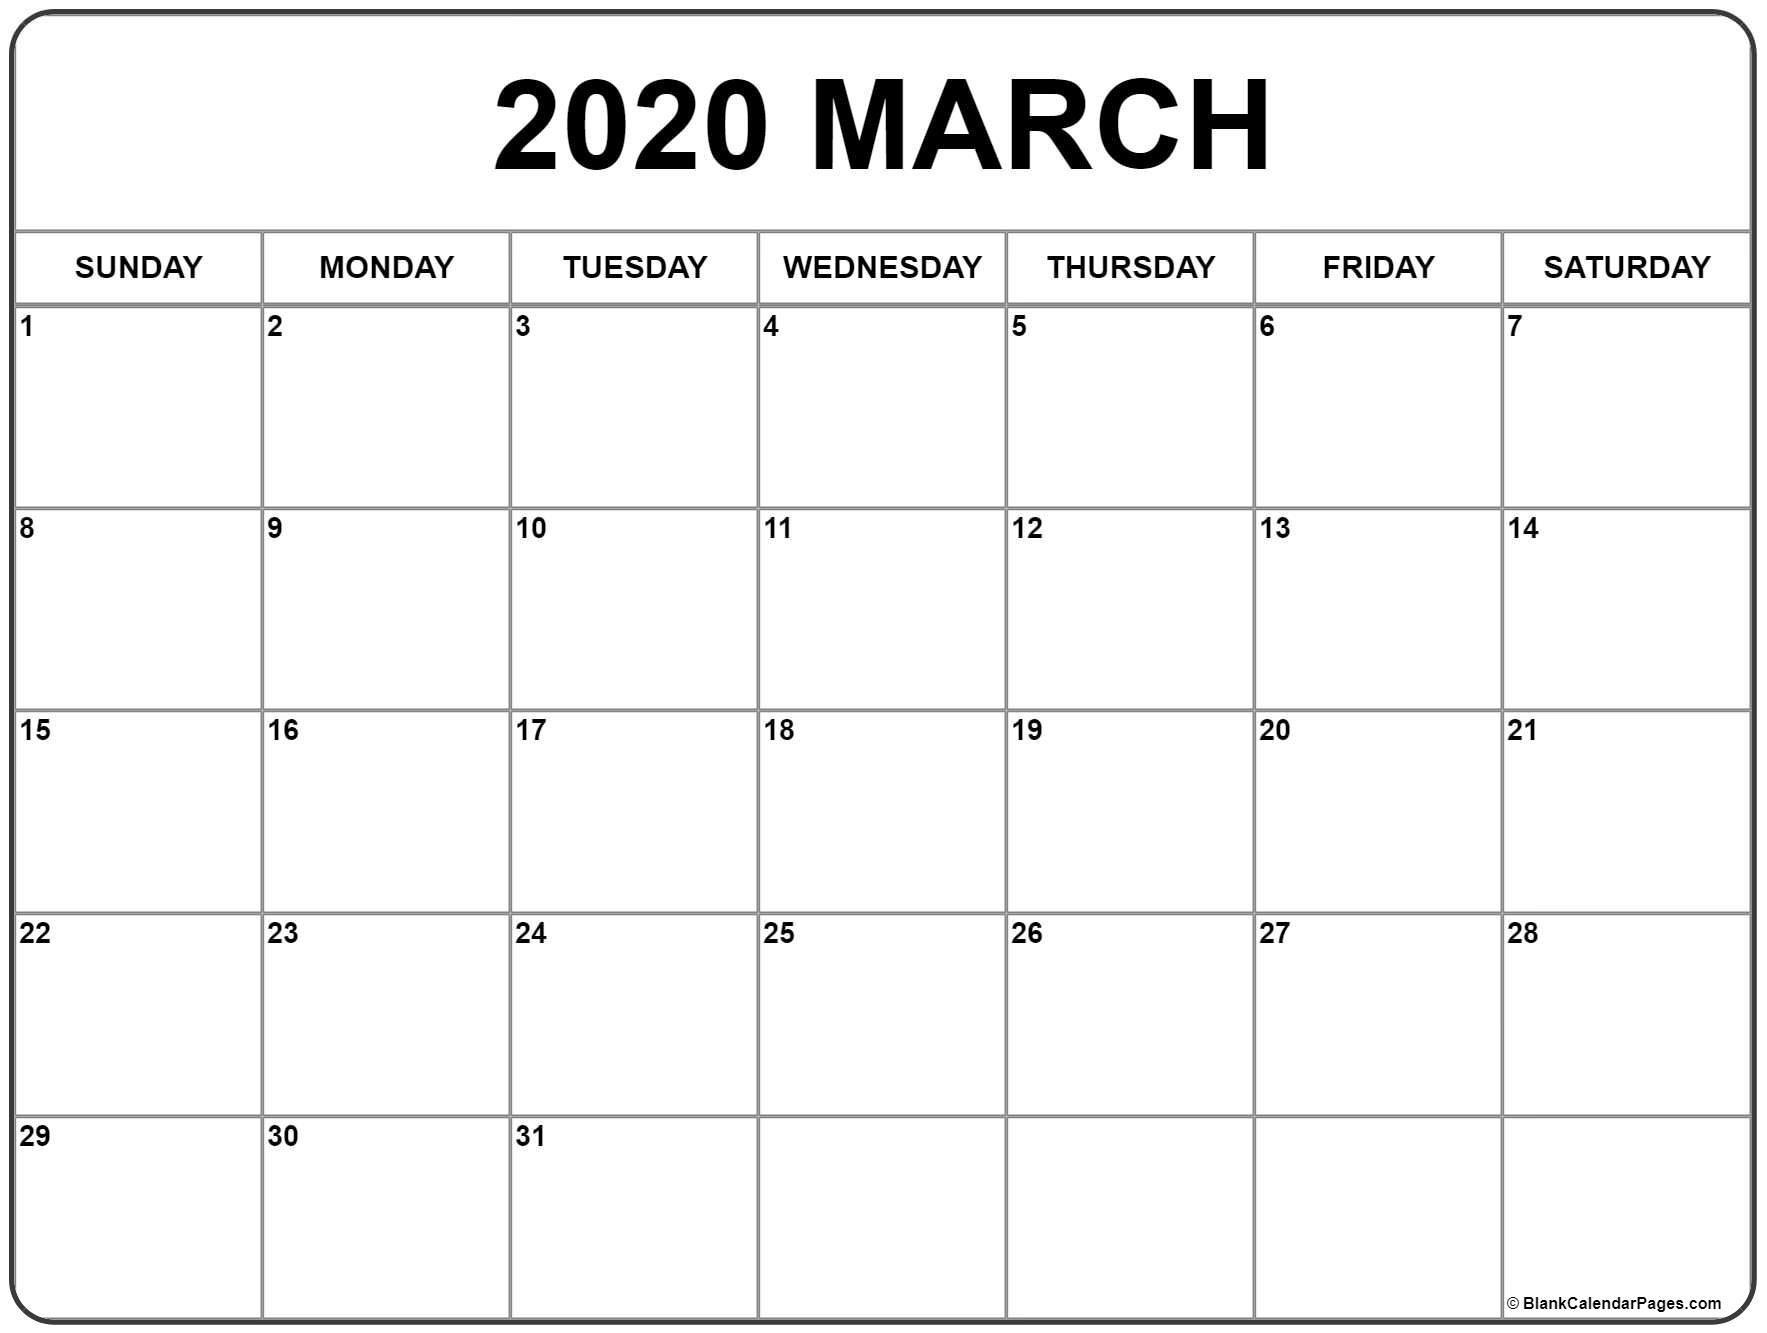 March 2020 Calendar | Free Printable Monthly Calendars in Gant Chart Calendar Year In Weeks For 2020